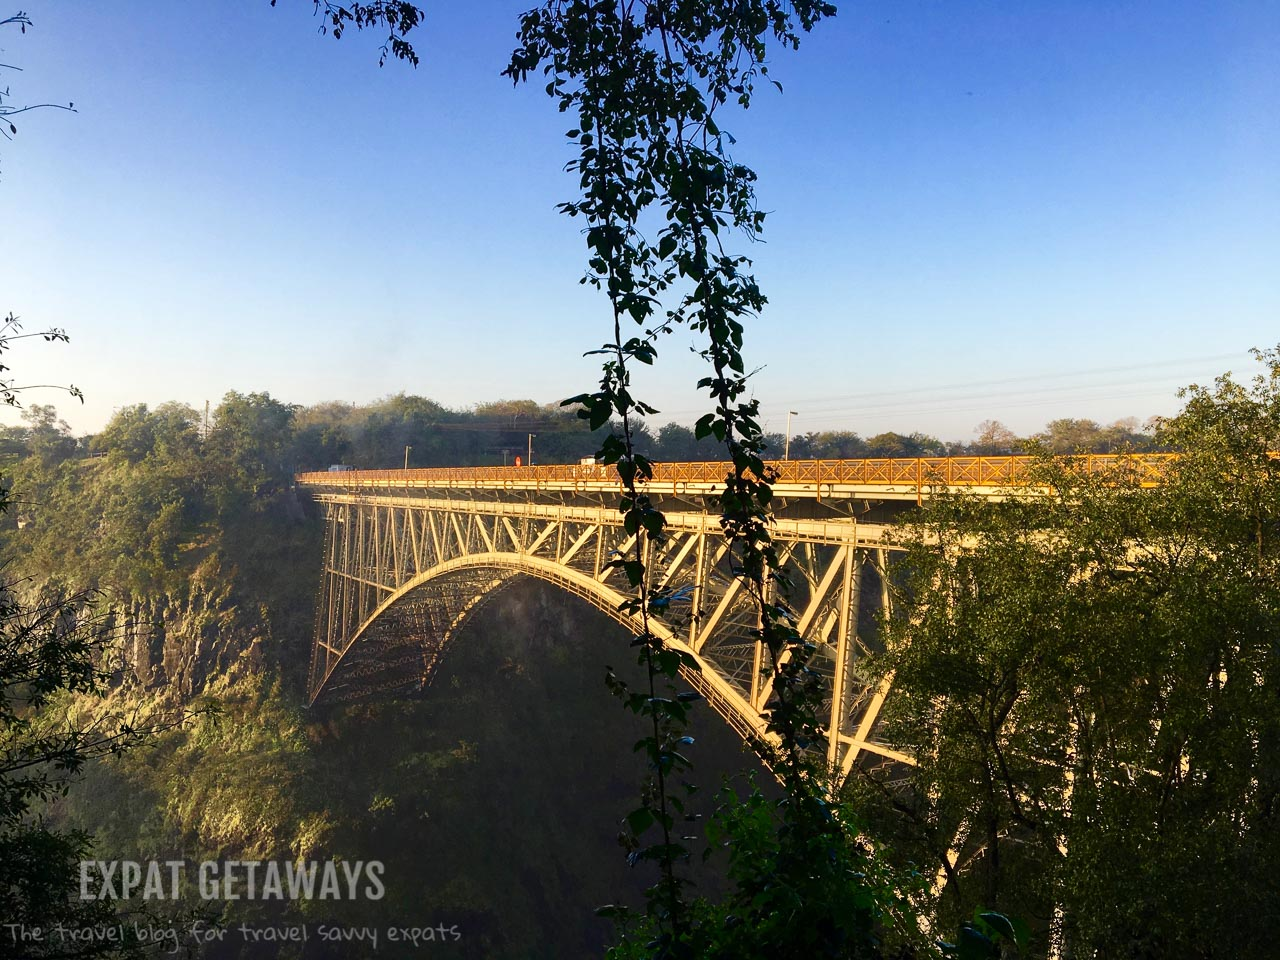 At viewpoint 16 you can see the Victoria Falls bridge which forms the boarder between Zimbabwe and Zambia.